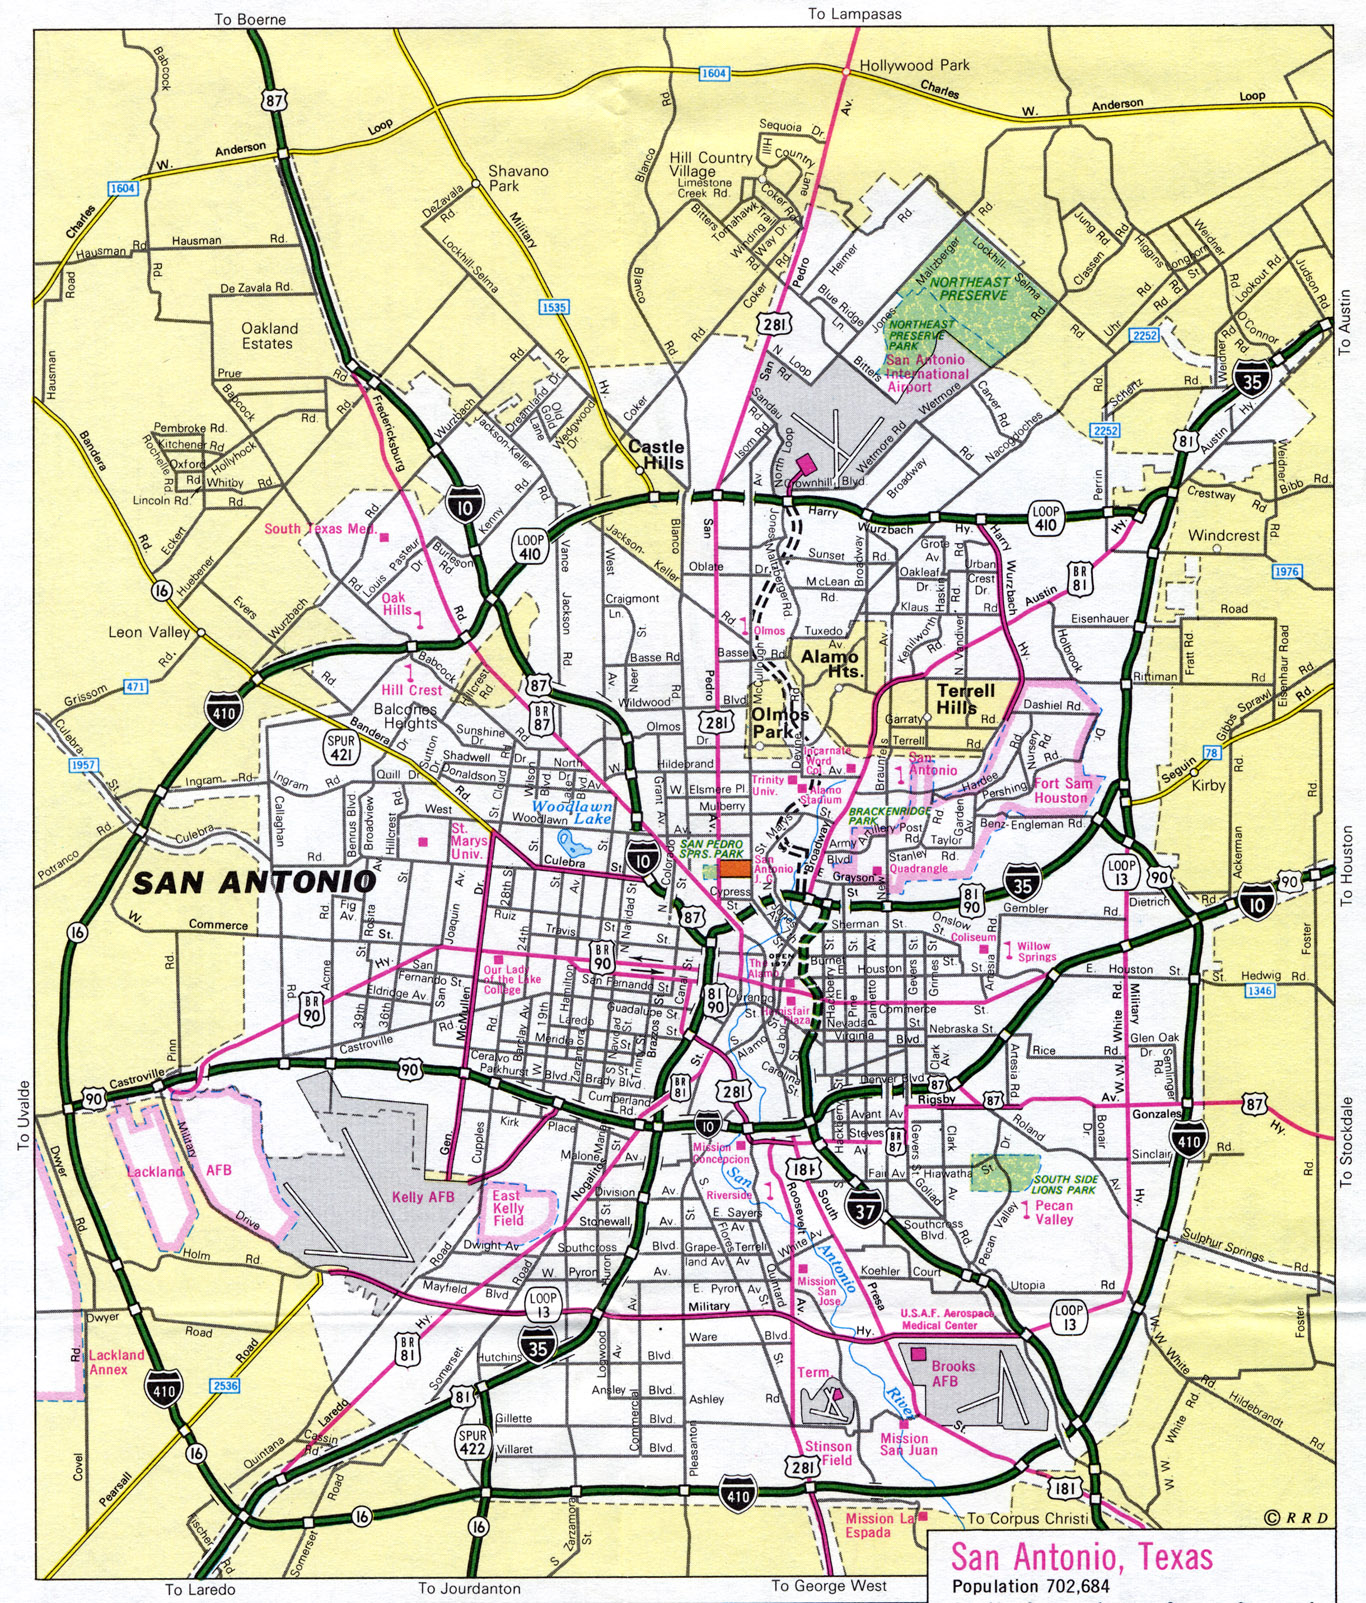 Map San Antonio Texas | Business Ideas 2013